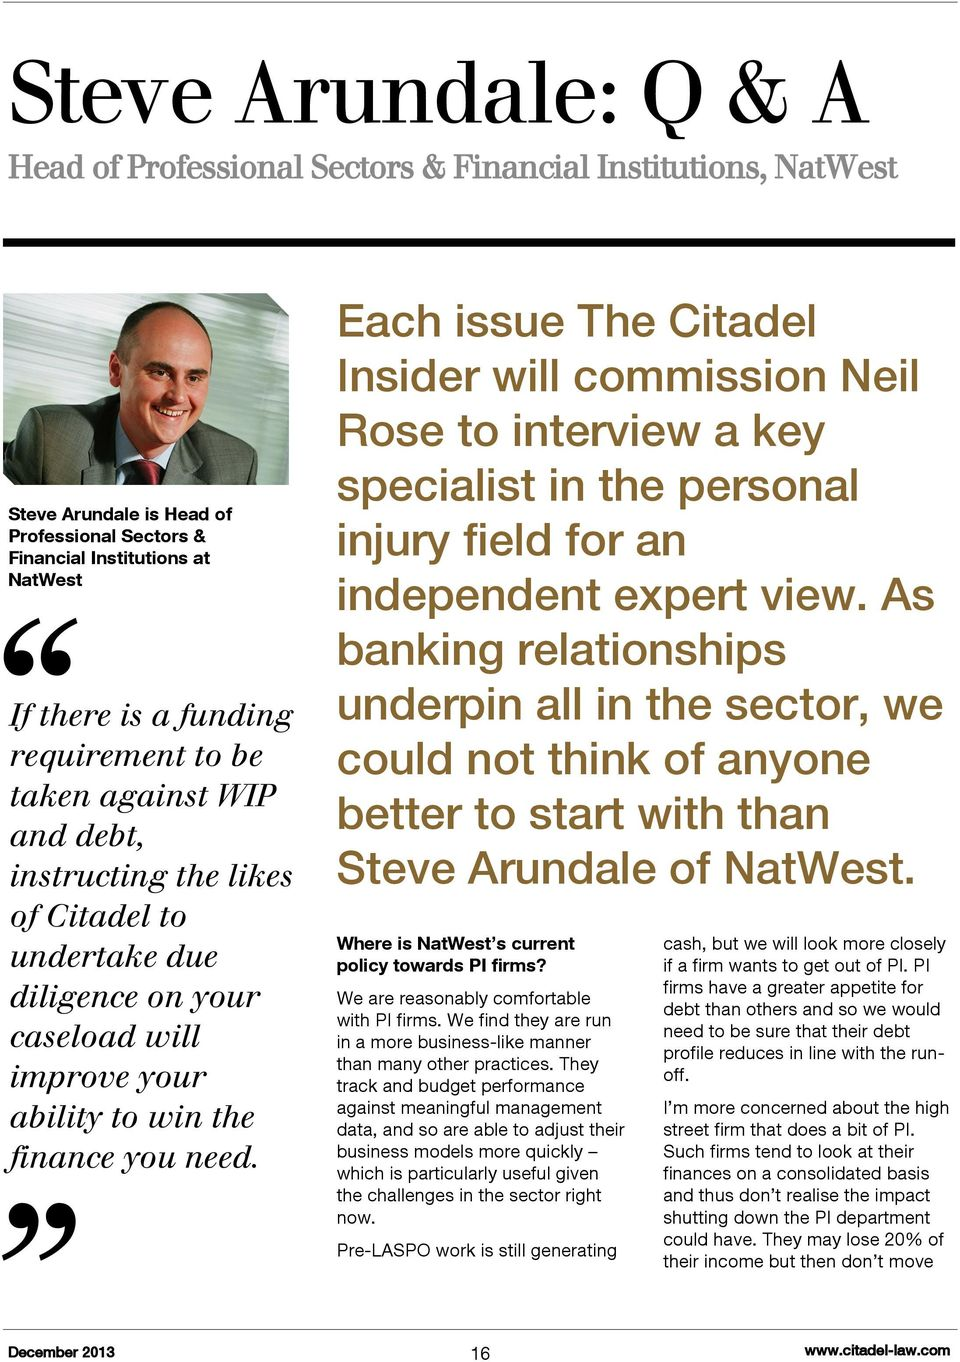 Each issue The Citadel Insider will commission Neil Rose to interview a key specialist in the personal injury field for an independent expert view.